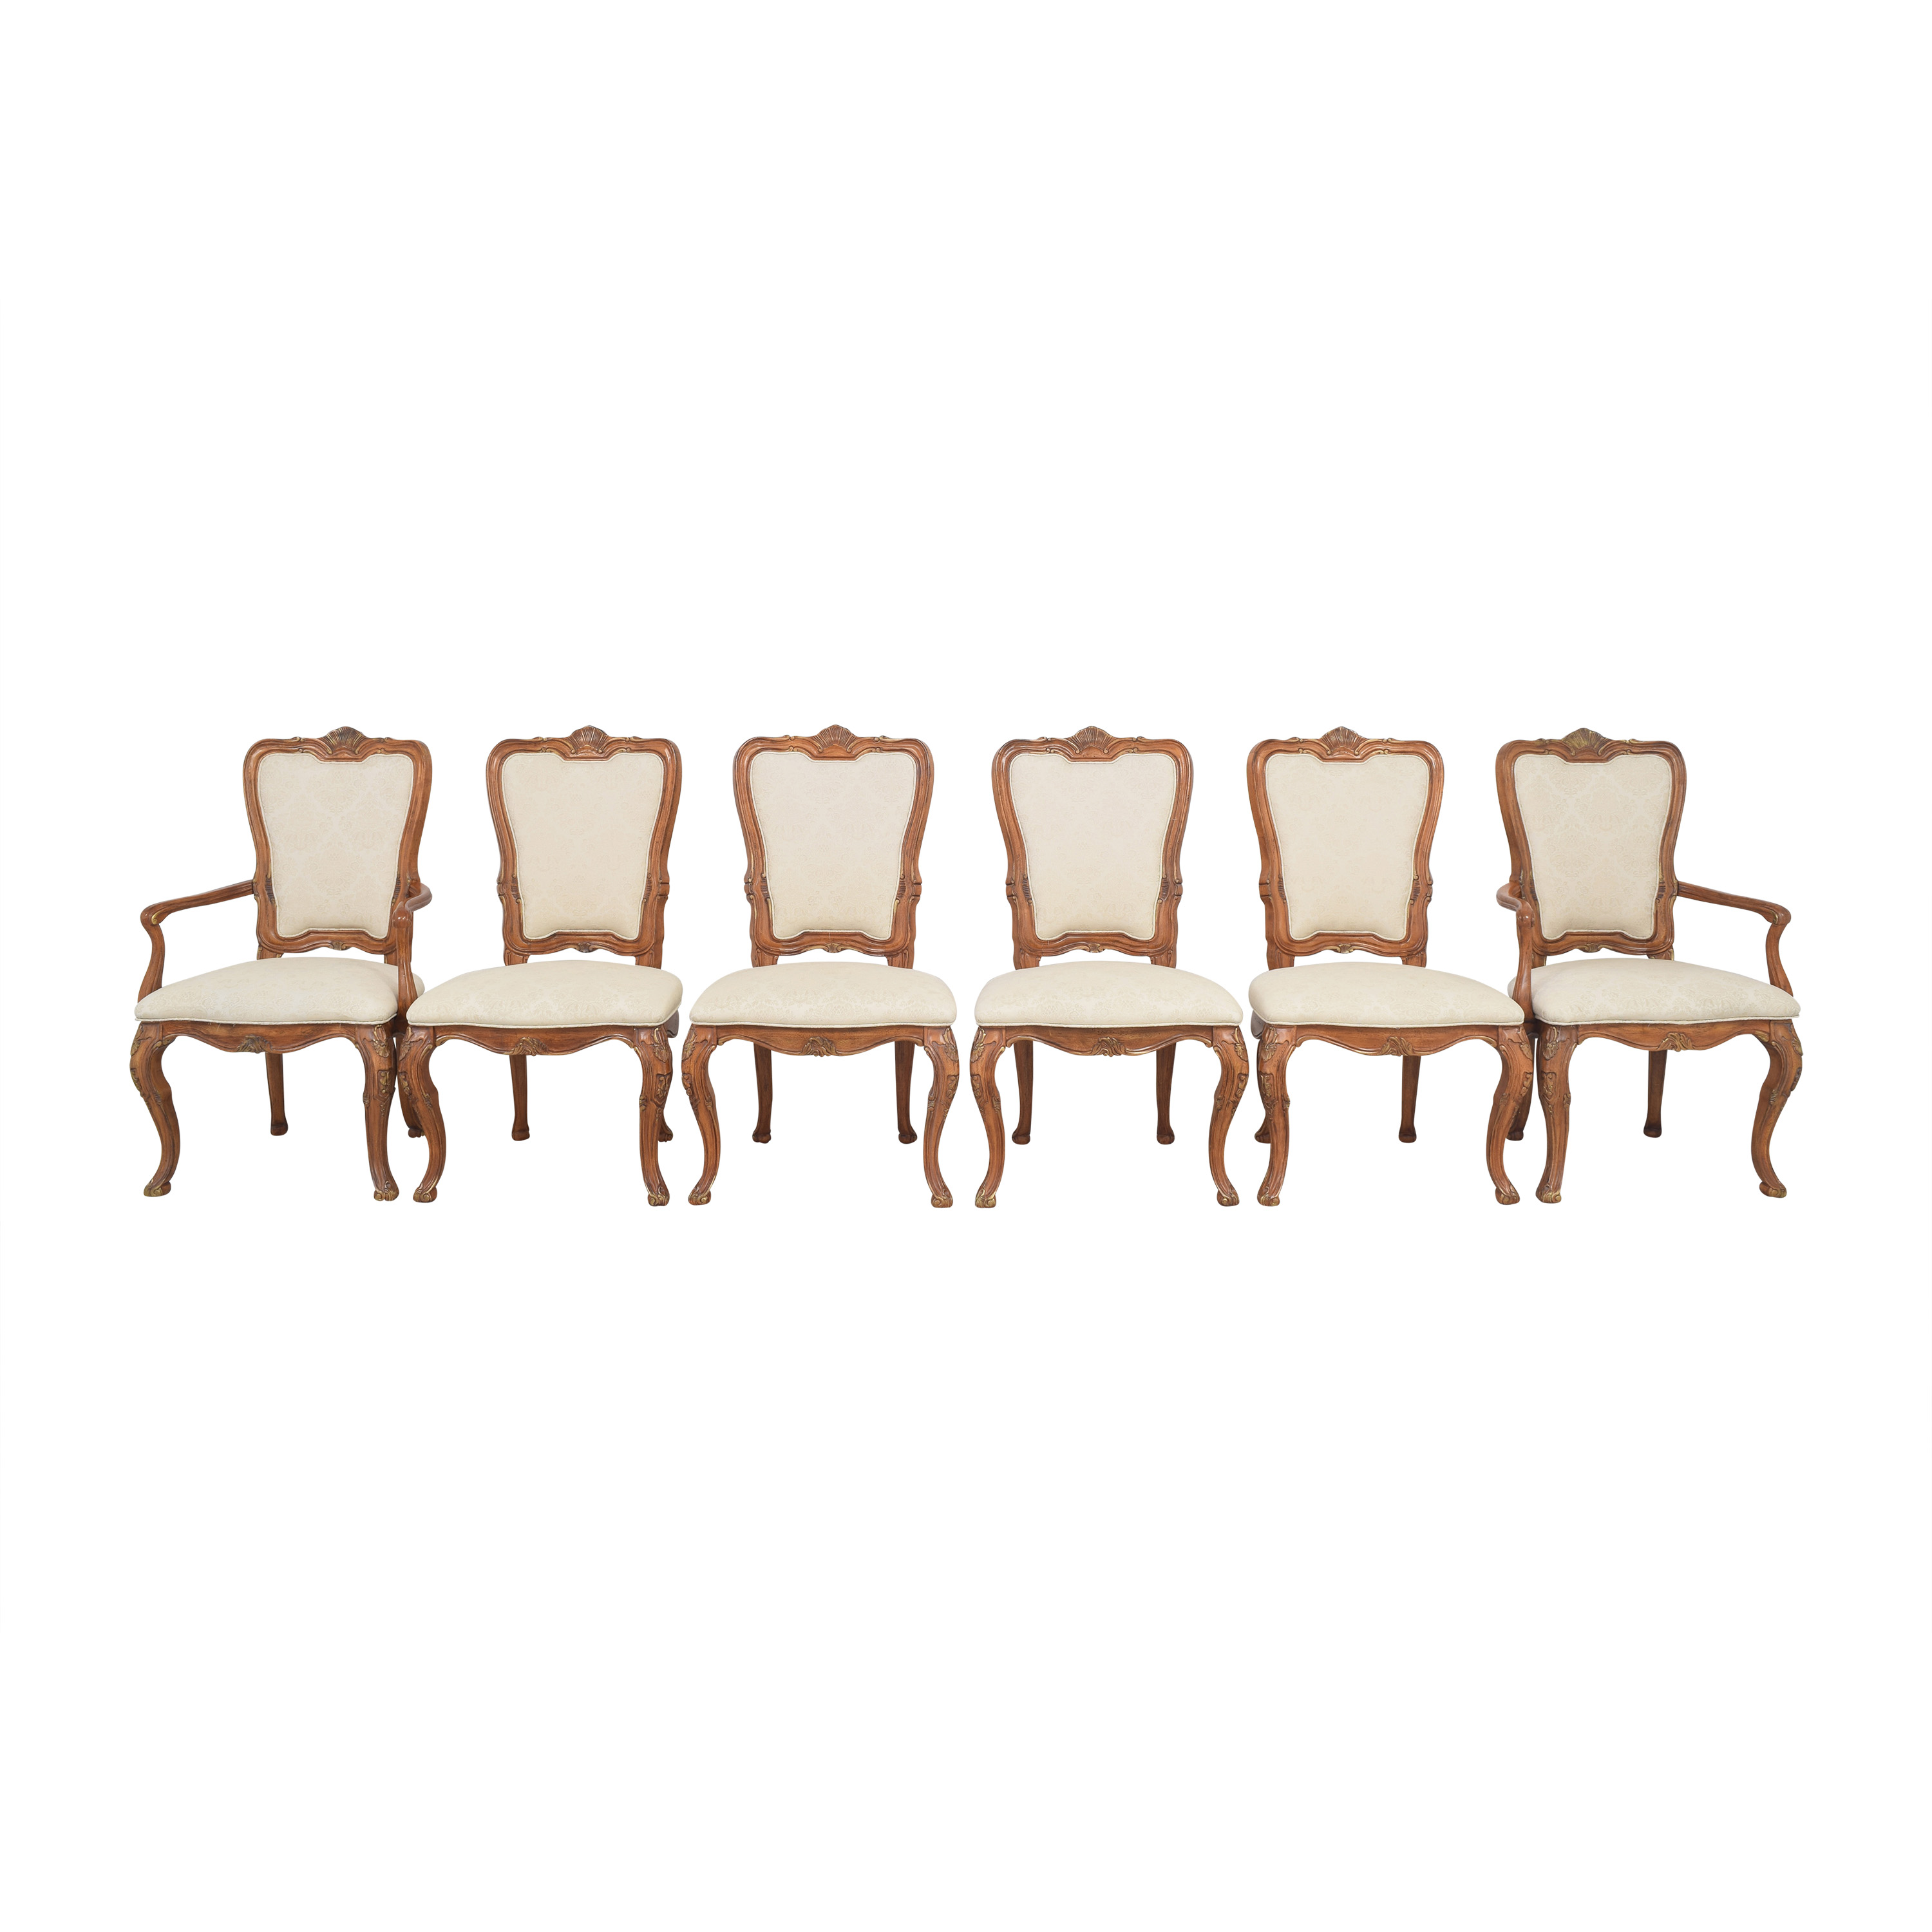 American Drew American Drew Upholstered Dining Chairs Chairs